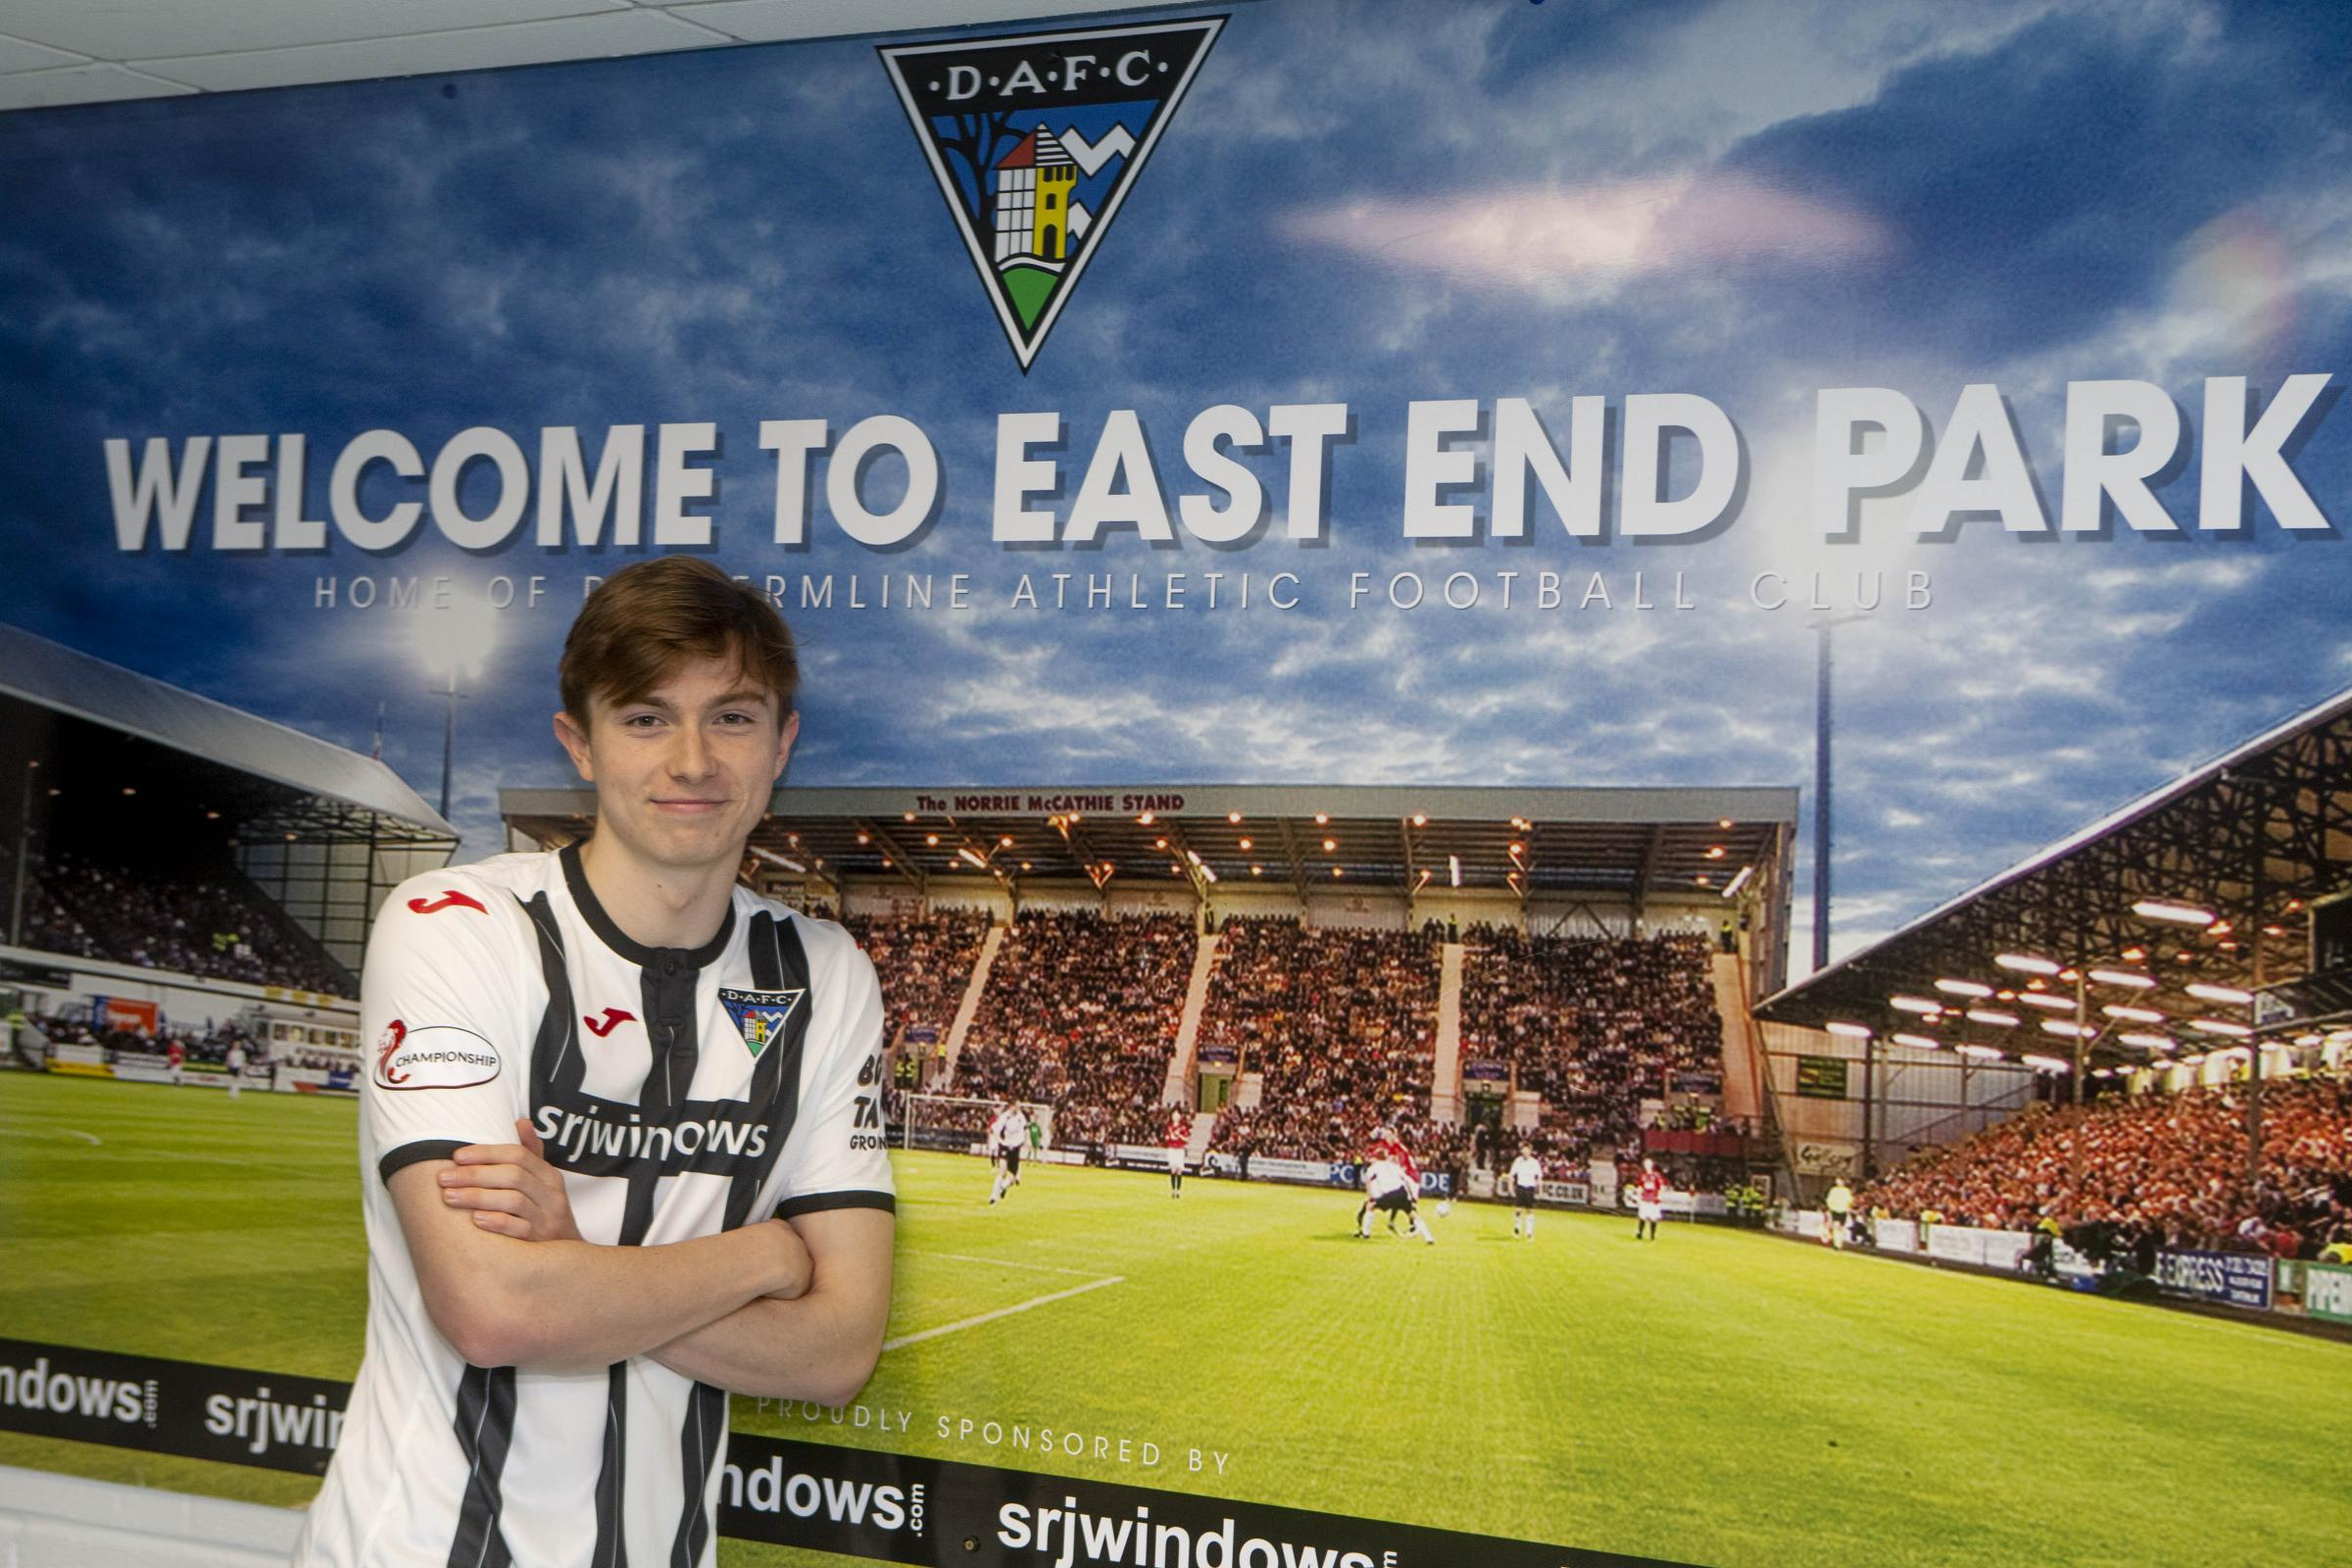 The Pars: Crystal Palace loanee Scott Banks on January move